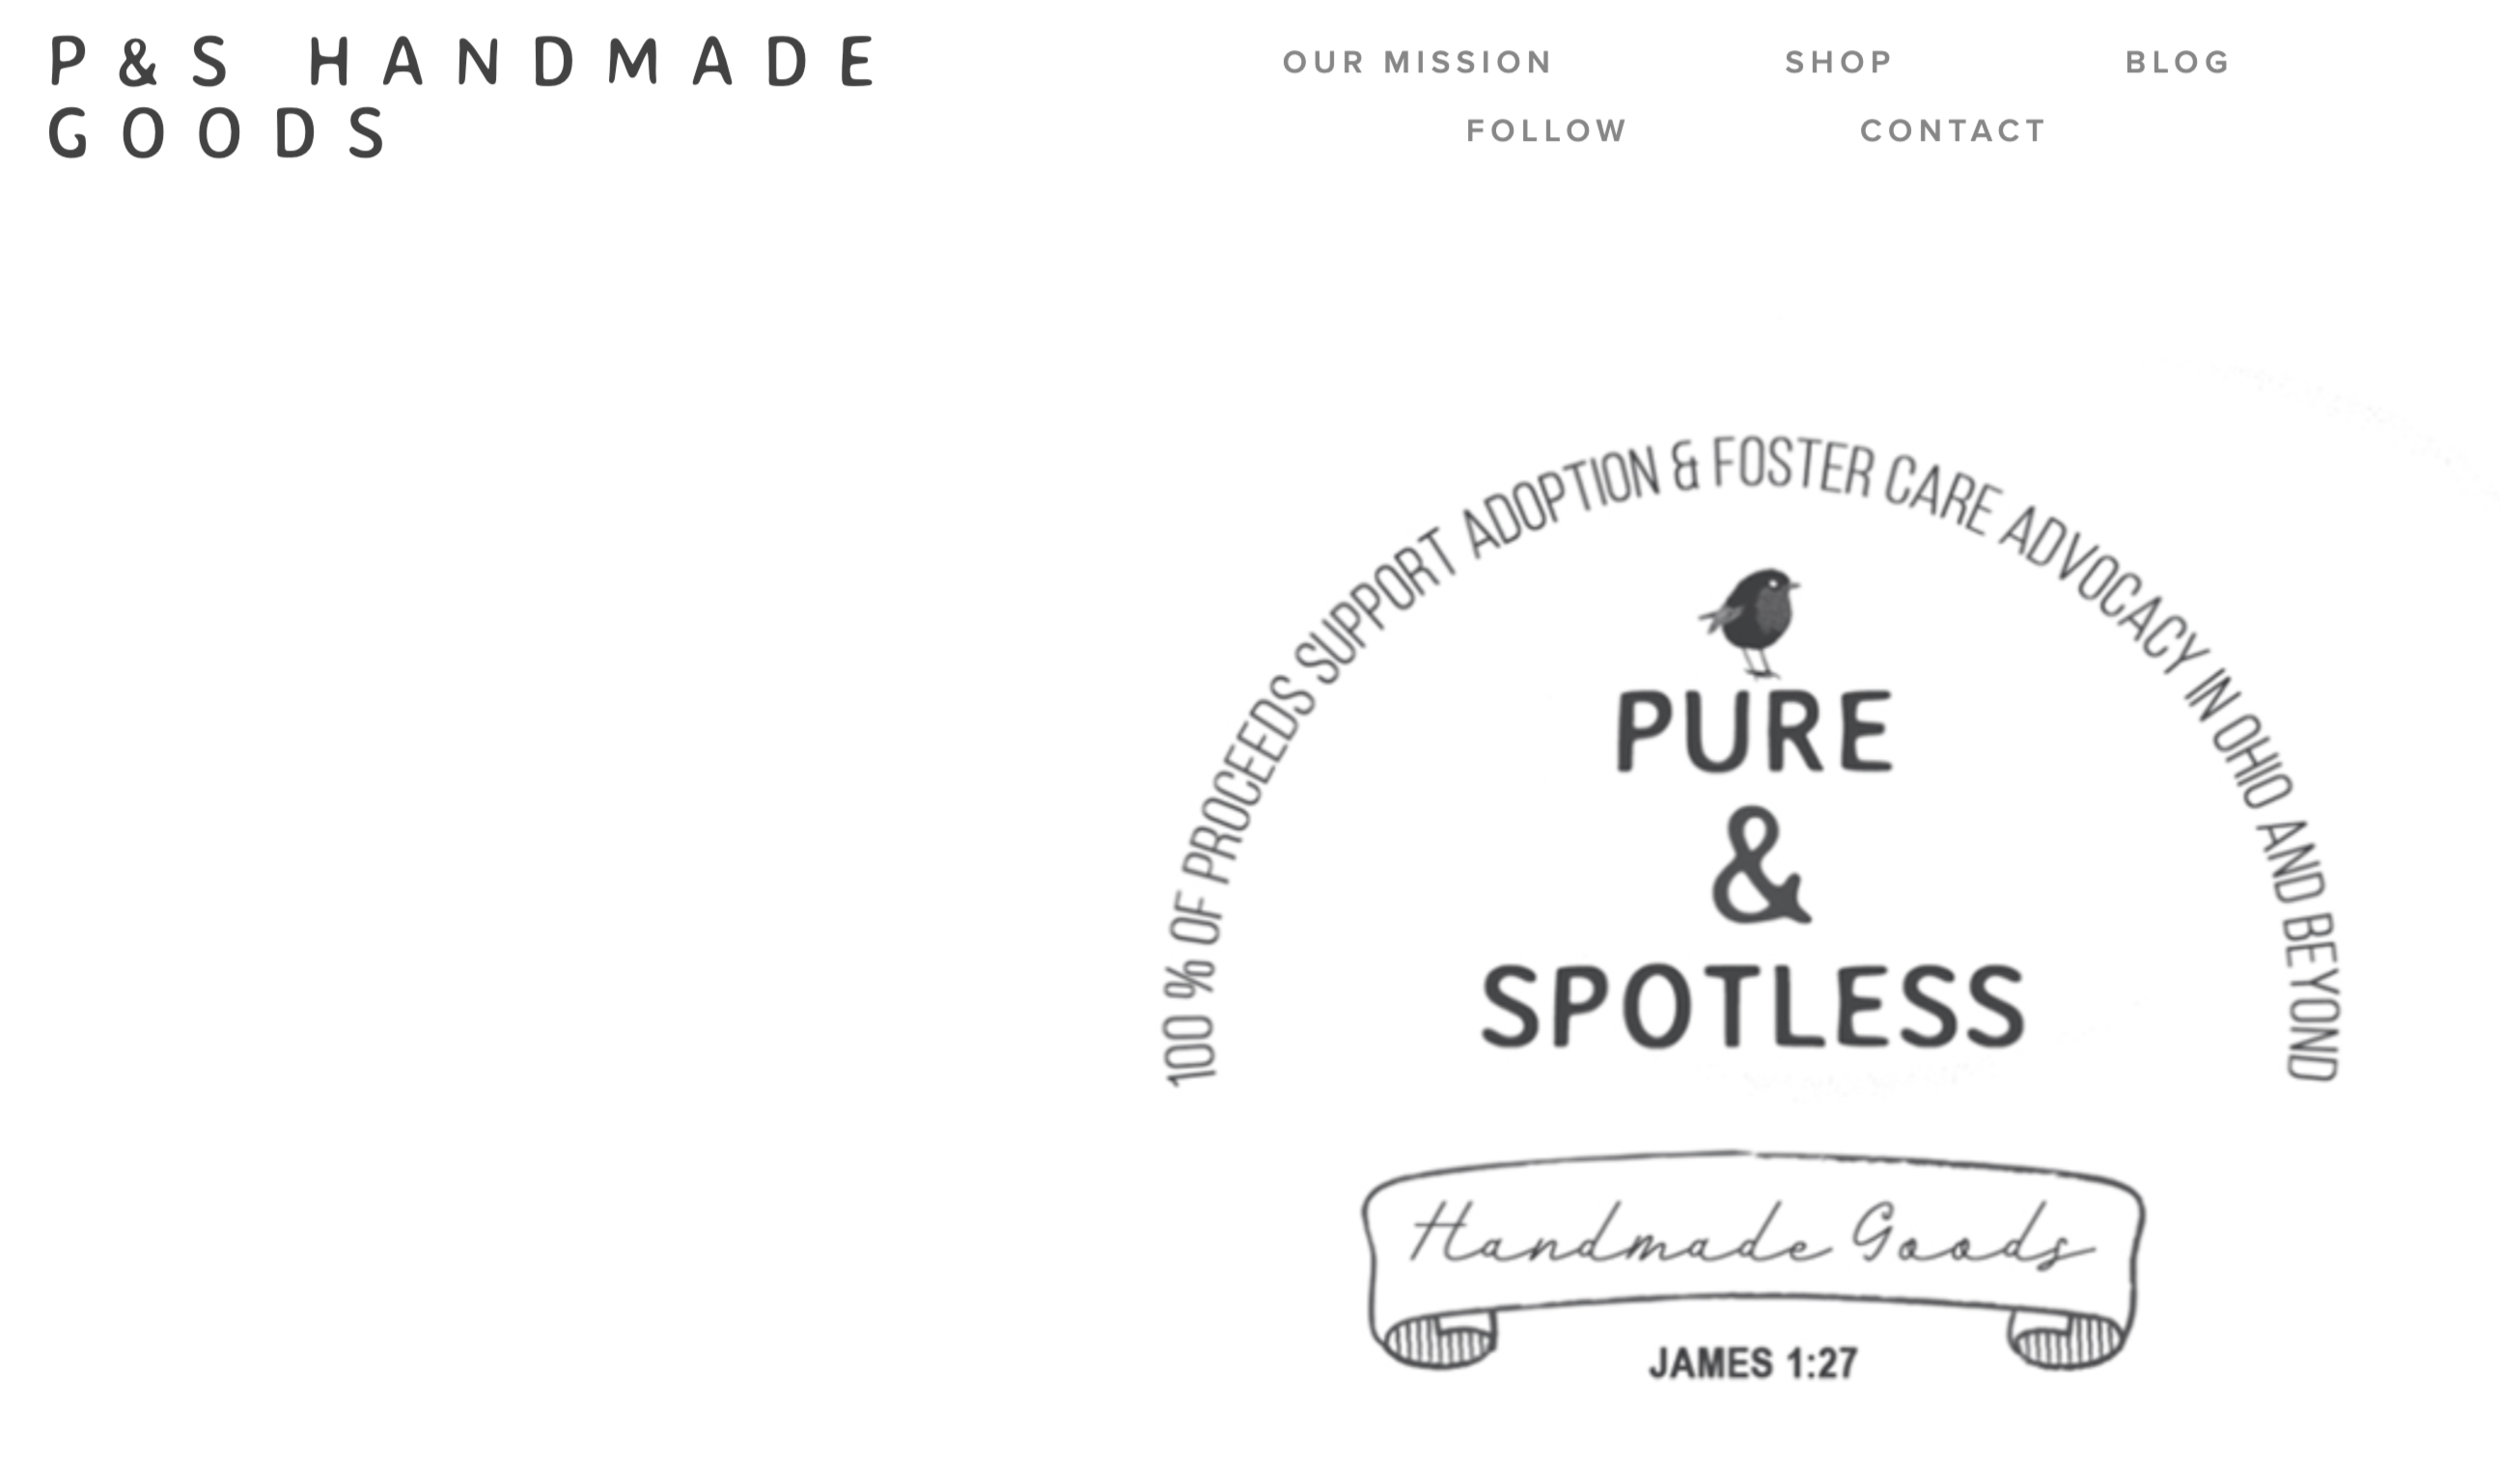 PURE & SPOTLESS GOODS - Introducing our brand, Pure and Spotless Goods! It's an online shop of thoughtfully designed items for the spaces where you live, work and rest. We hope you enjoy browsing online and find value in the high quality items we've been creating. And you can feel good about the fact that all of the proceeds of our shop fund the work of caring for modern day orphans in the Ohio area and beyond.